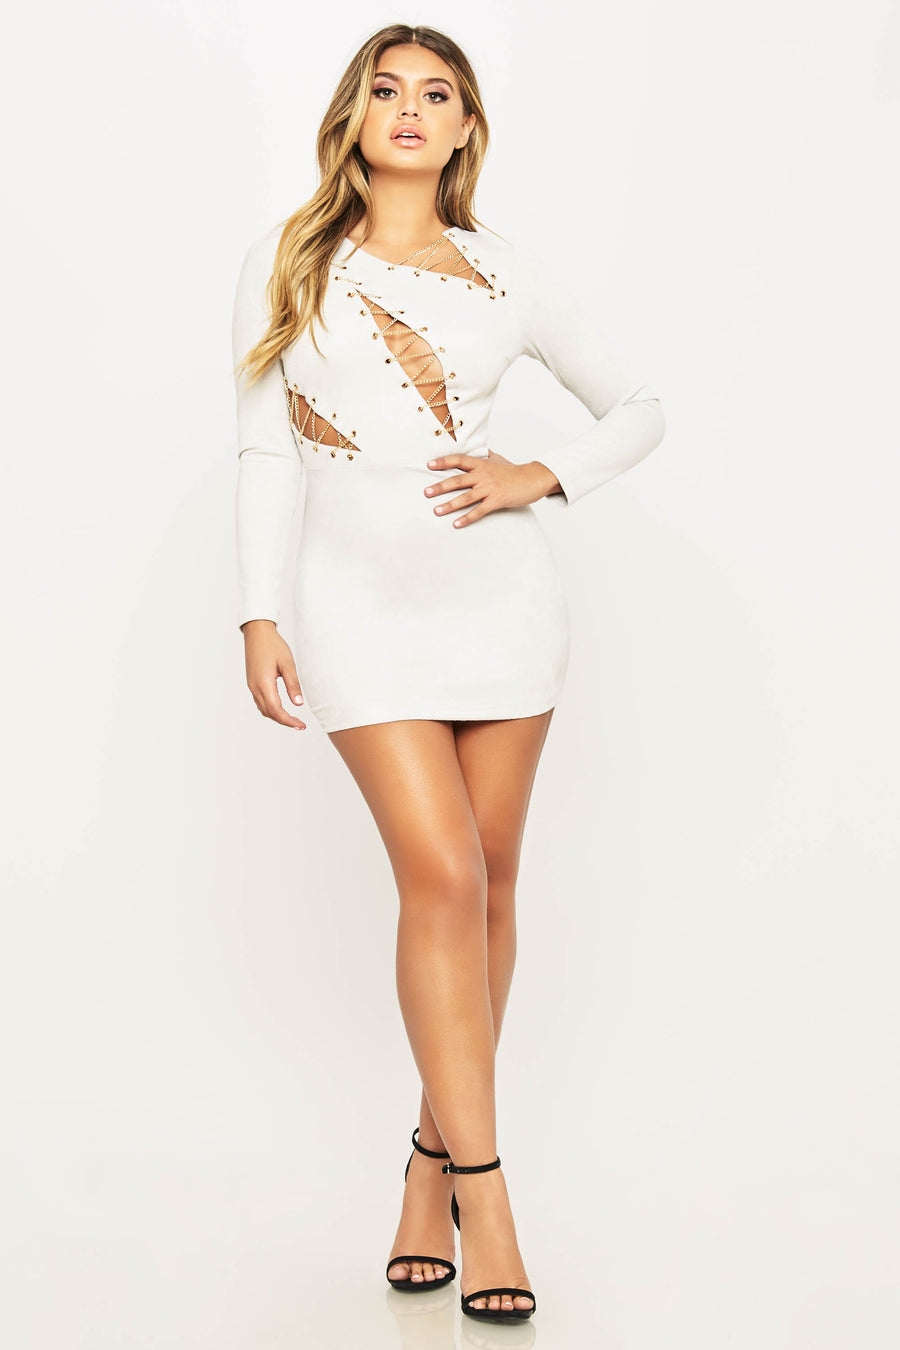 Chained Down Mini Dress - HoneyBum